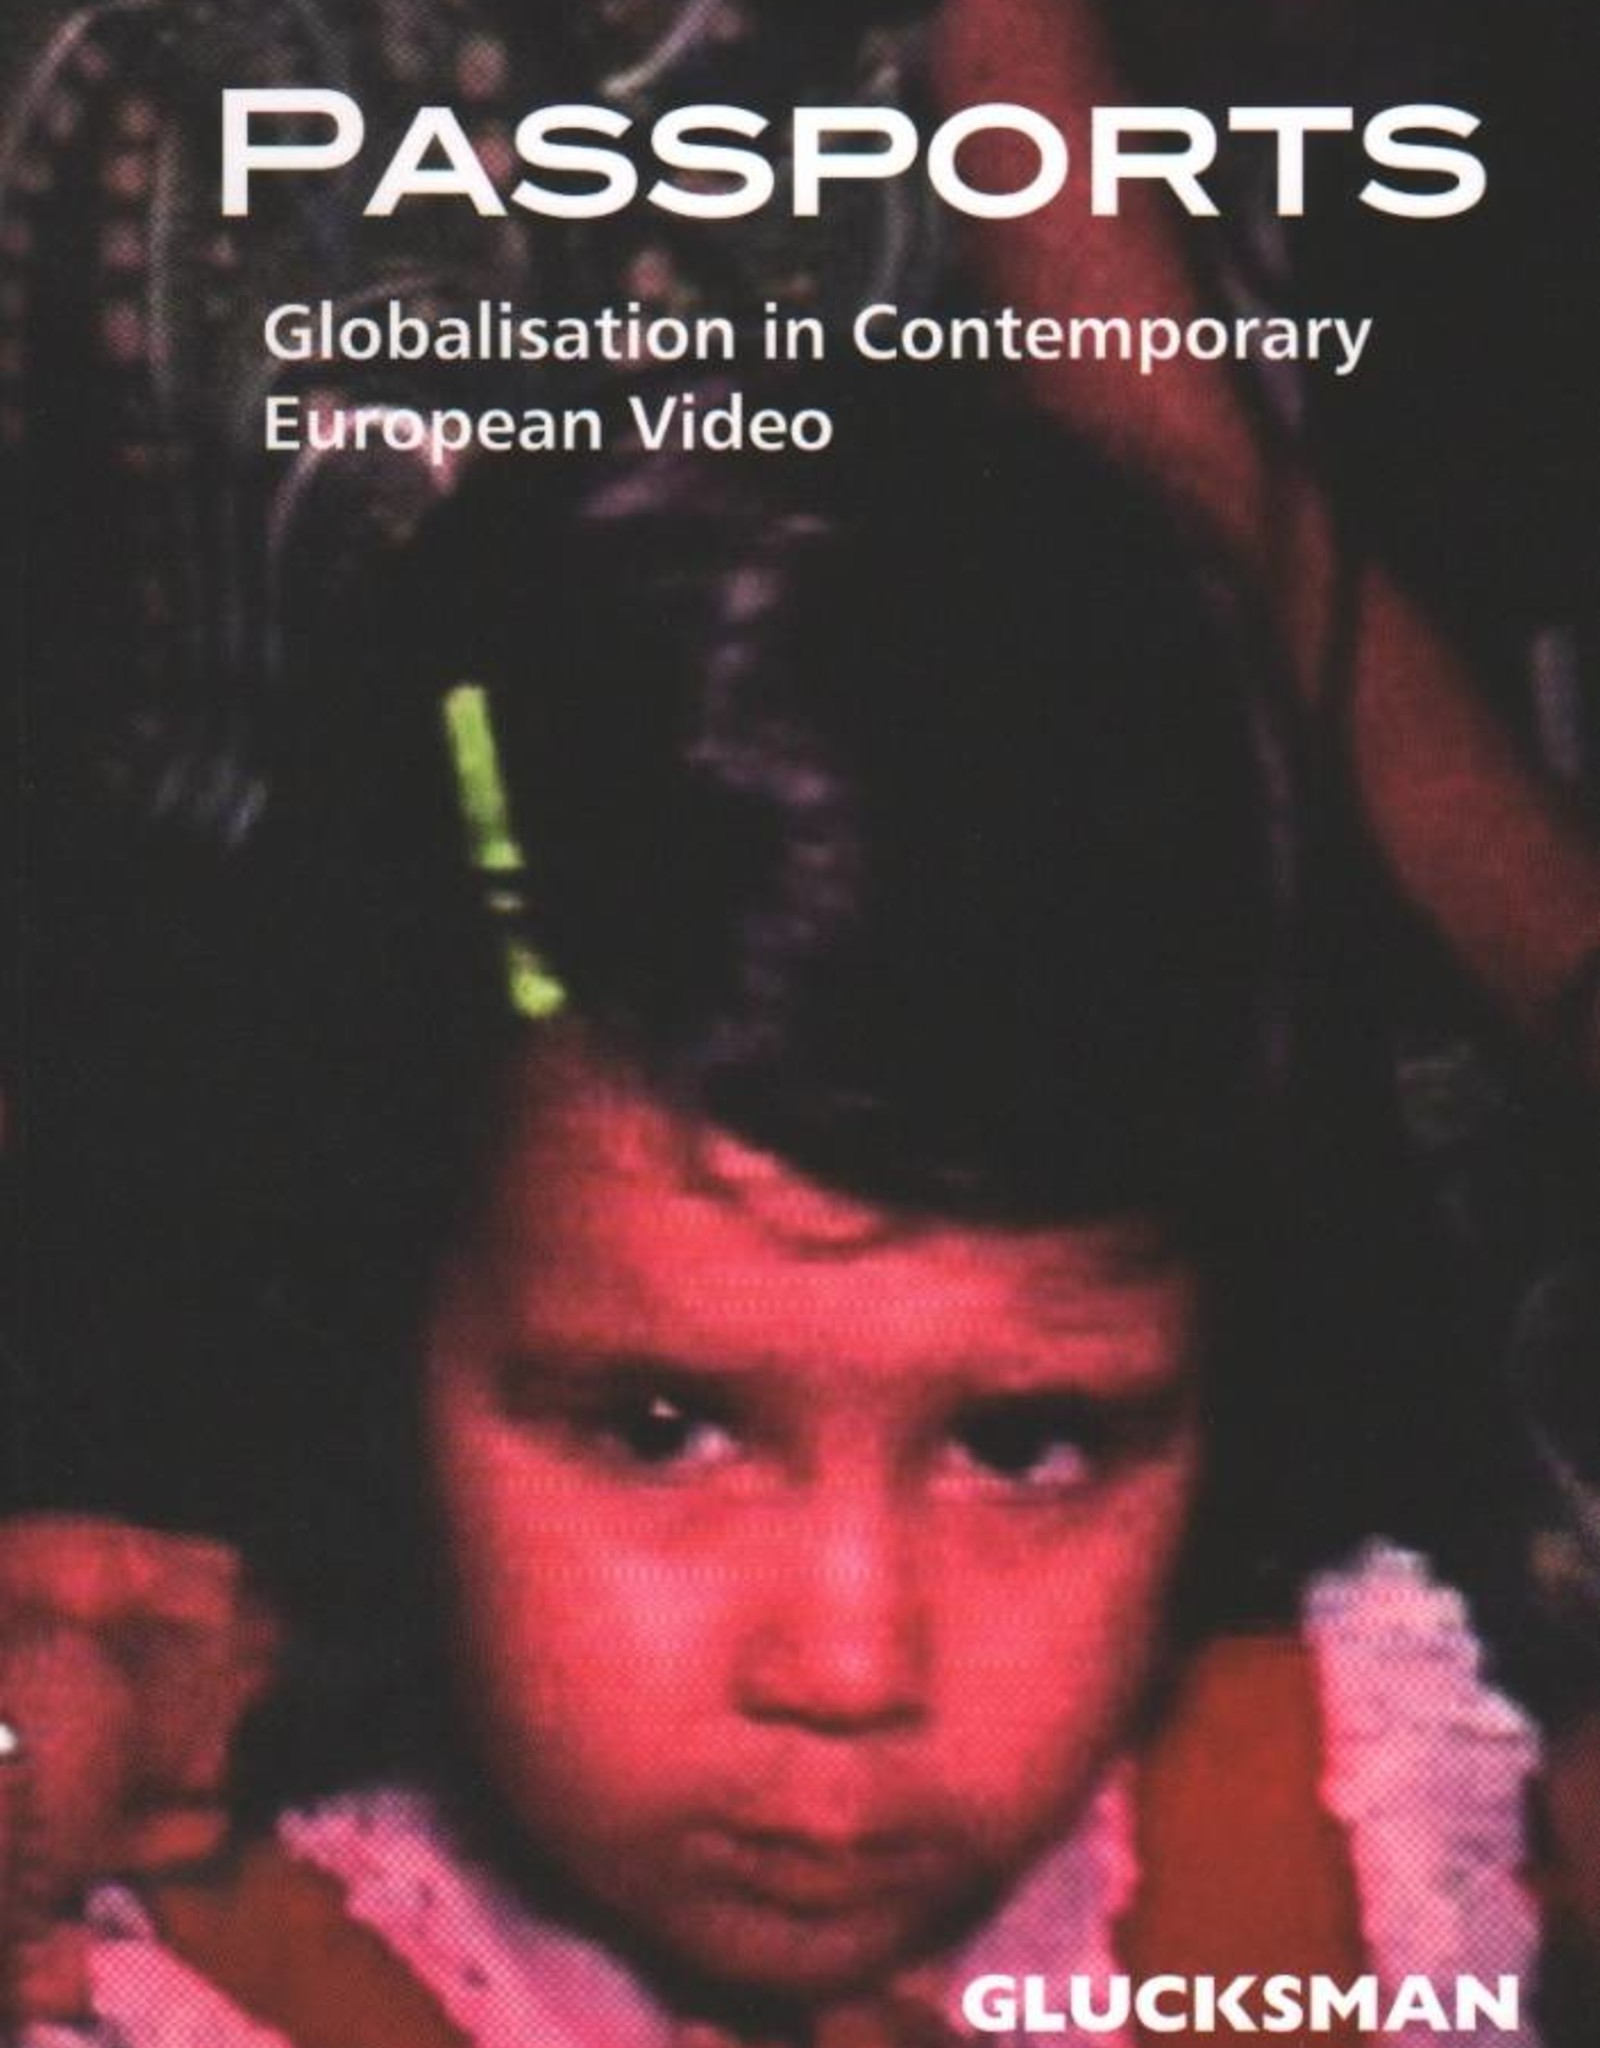 The Glucksman Passports - Globalisation in Contemporary European Video